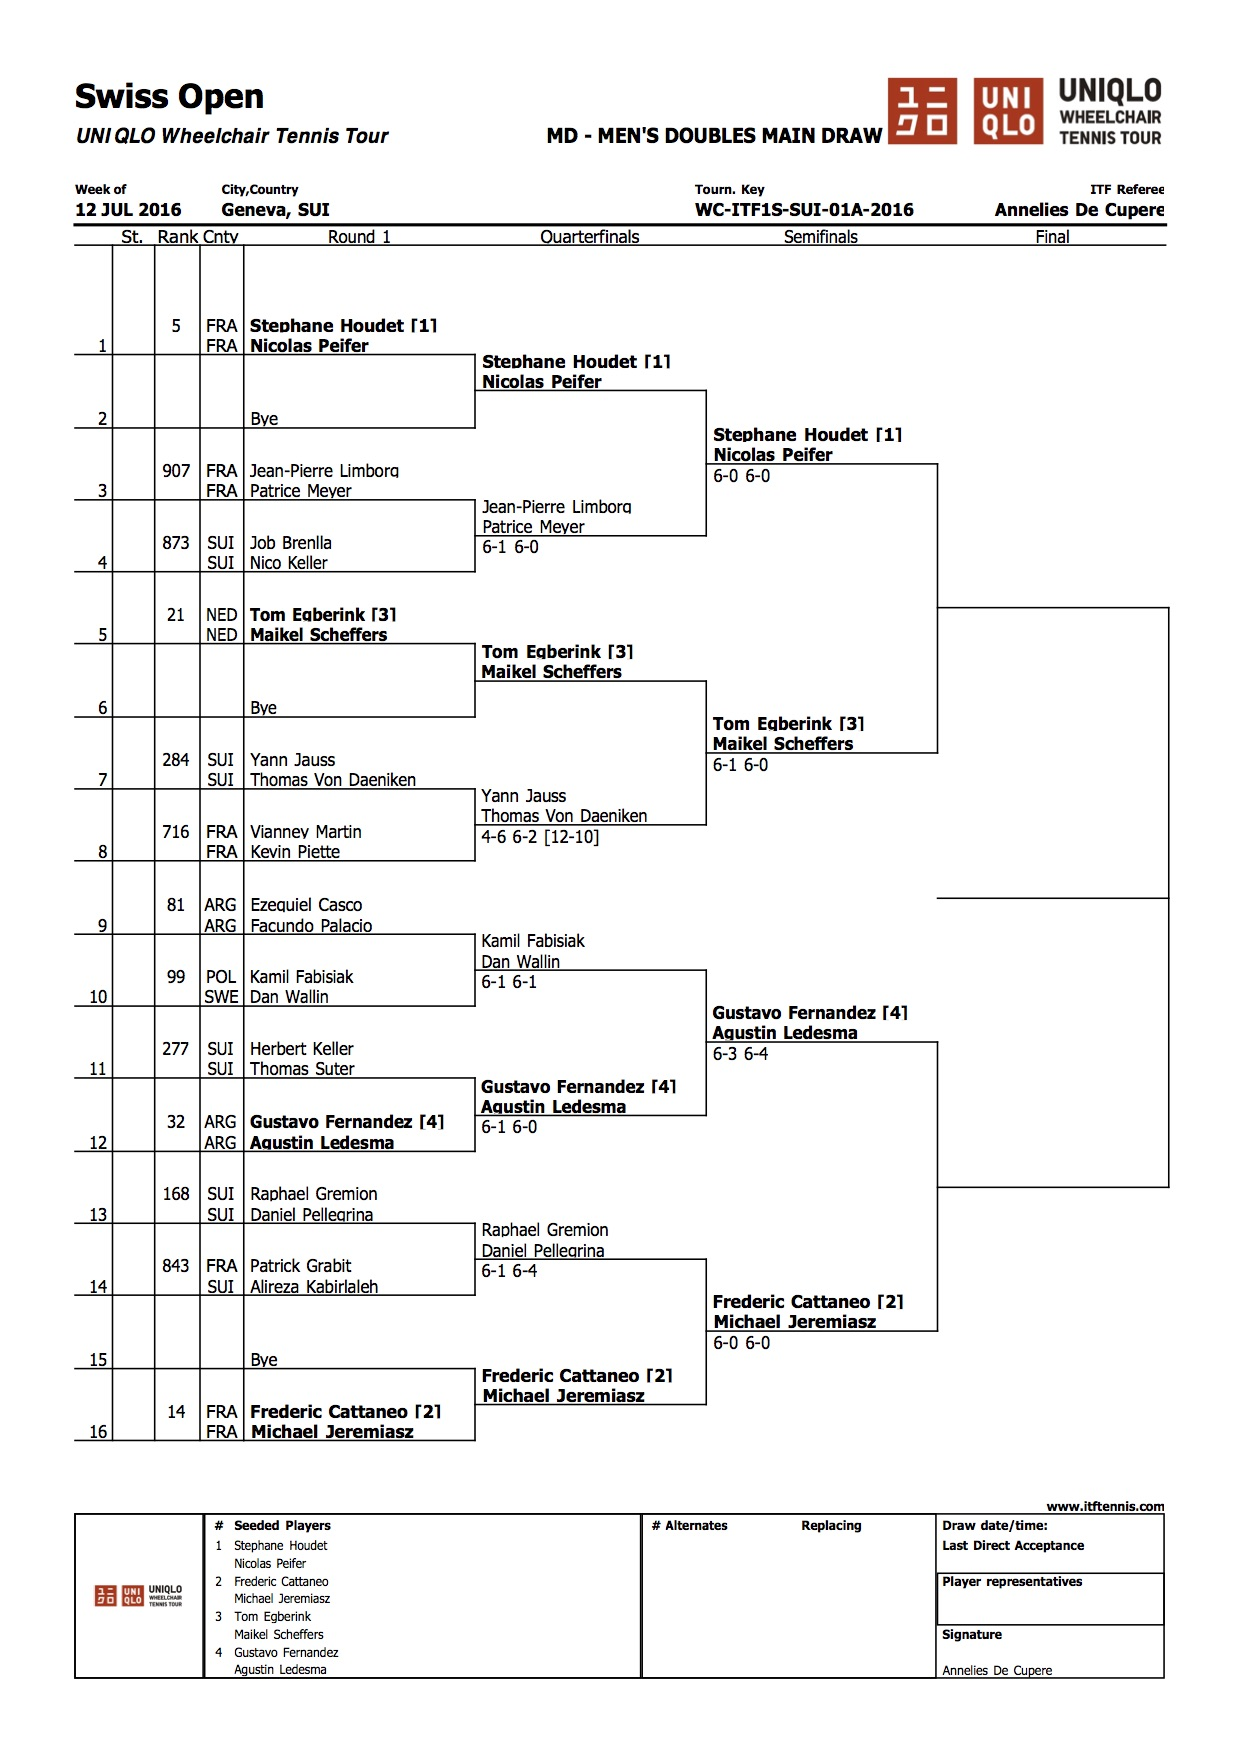 MAIN DOUBLE DRAW